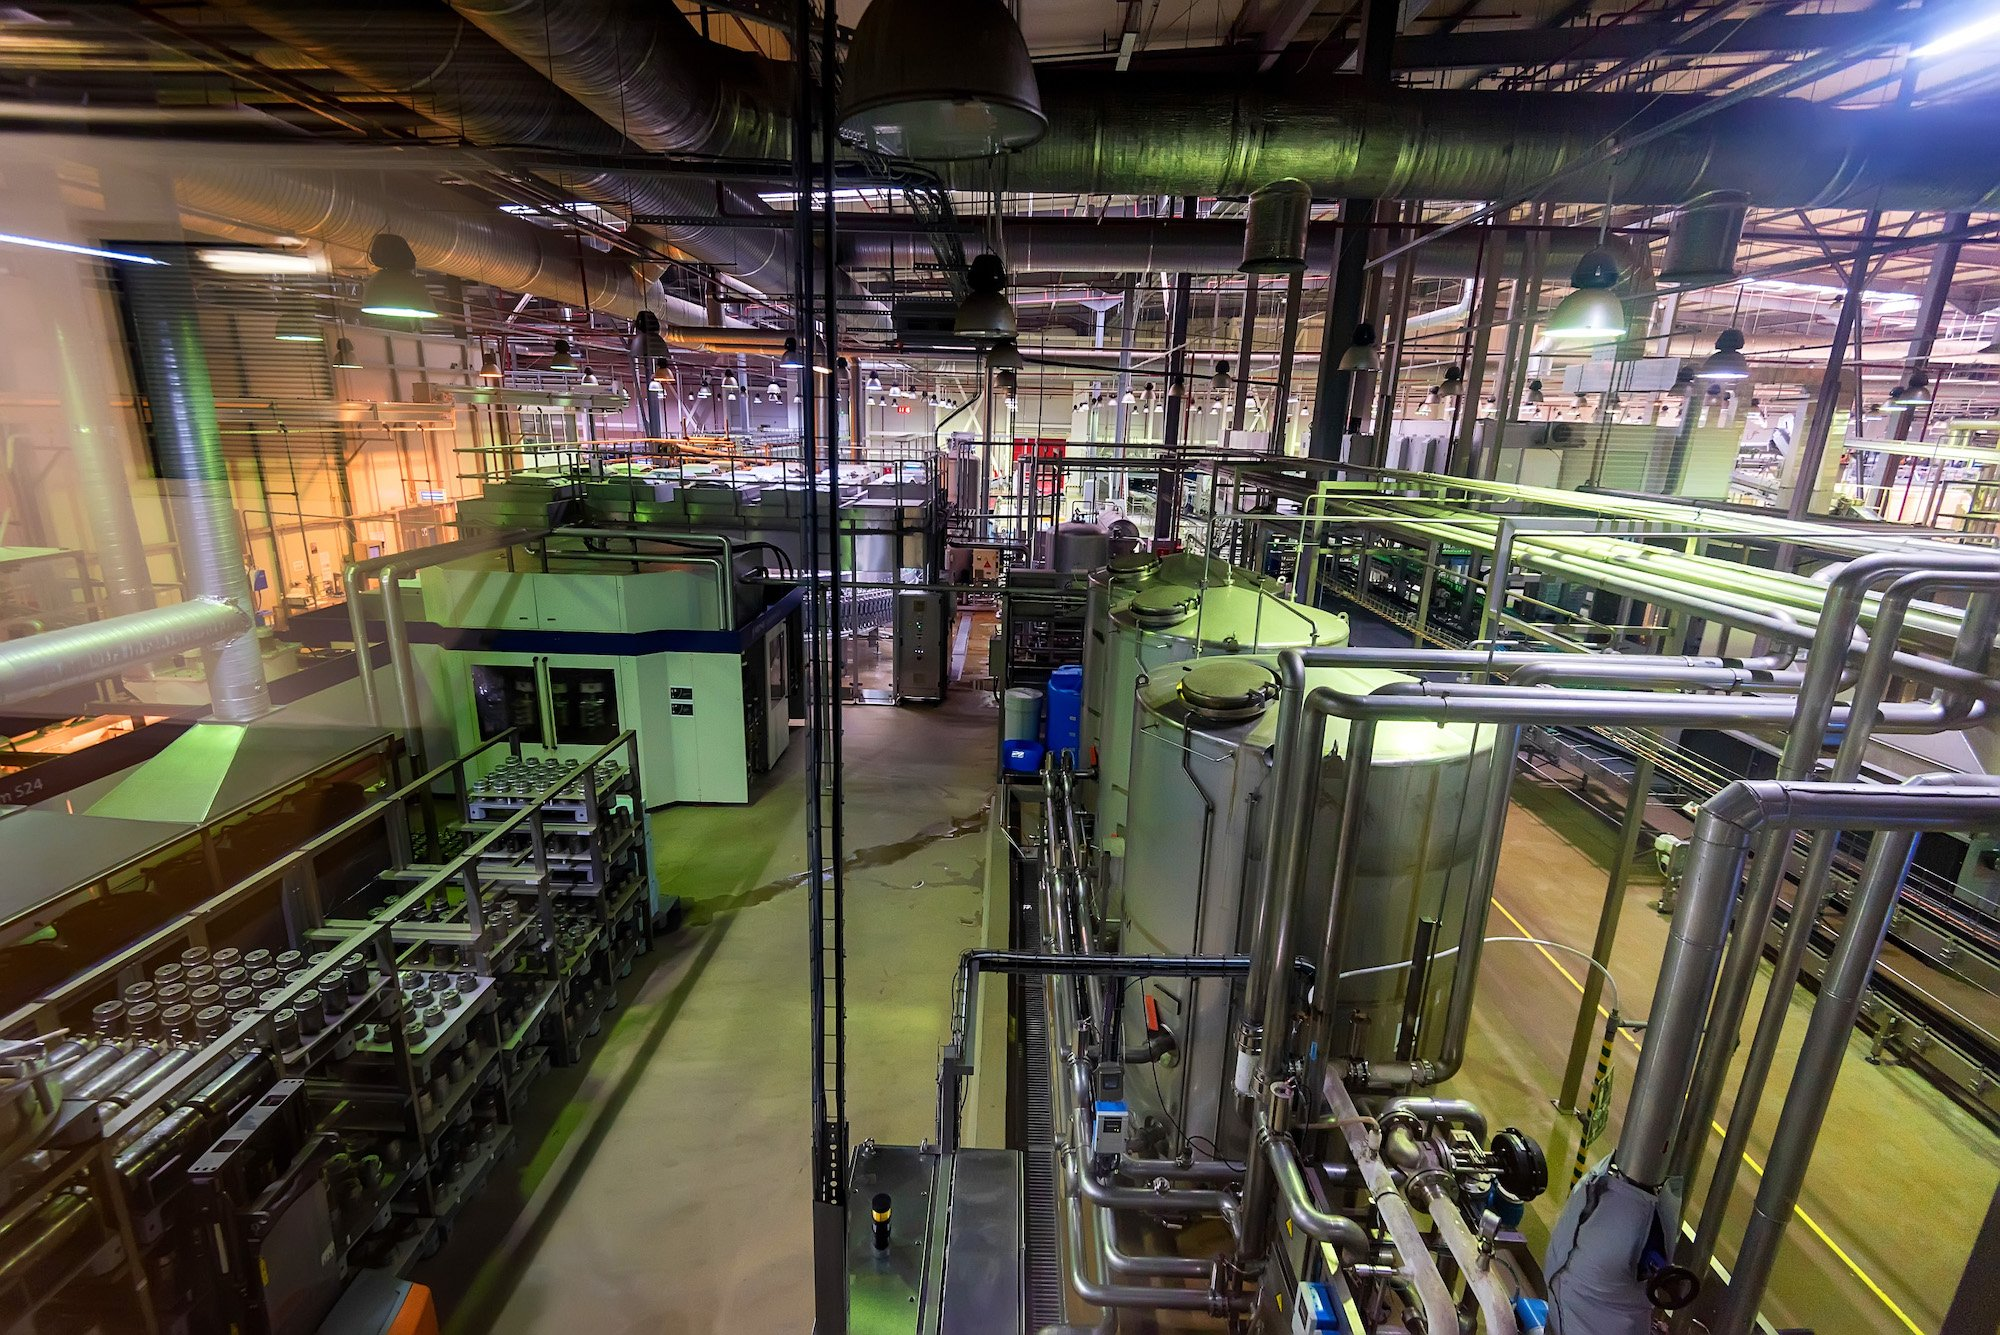 industrial-interior-of-soft-drinks-factory-with-YTV62F7